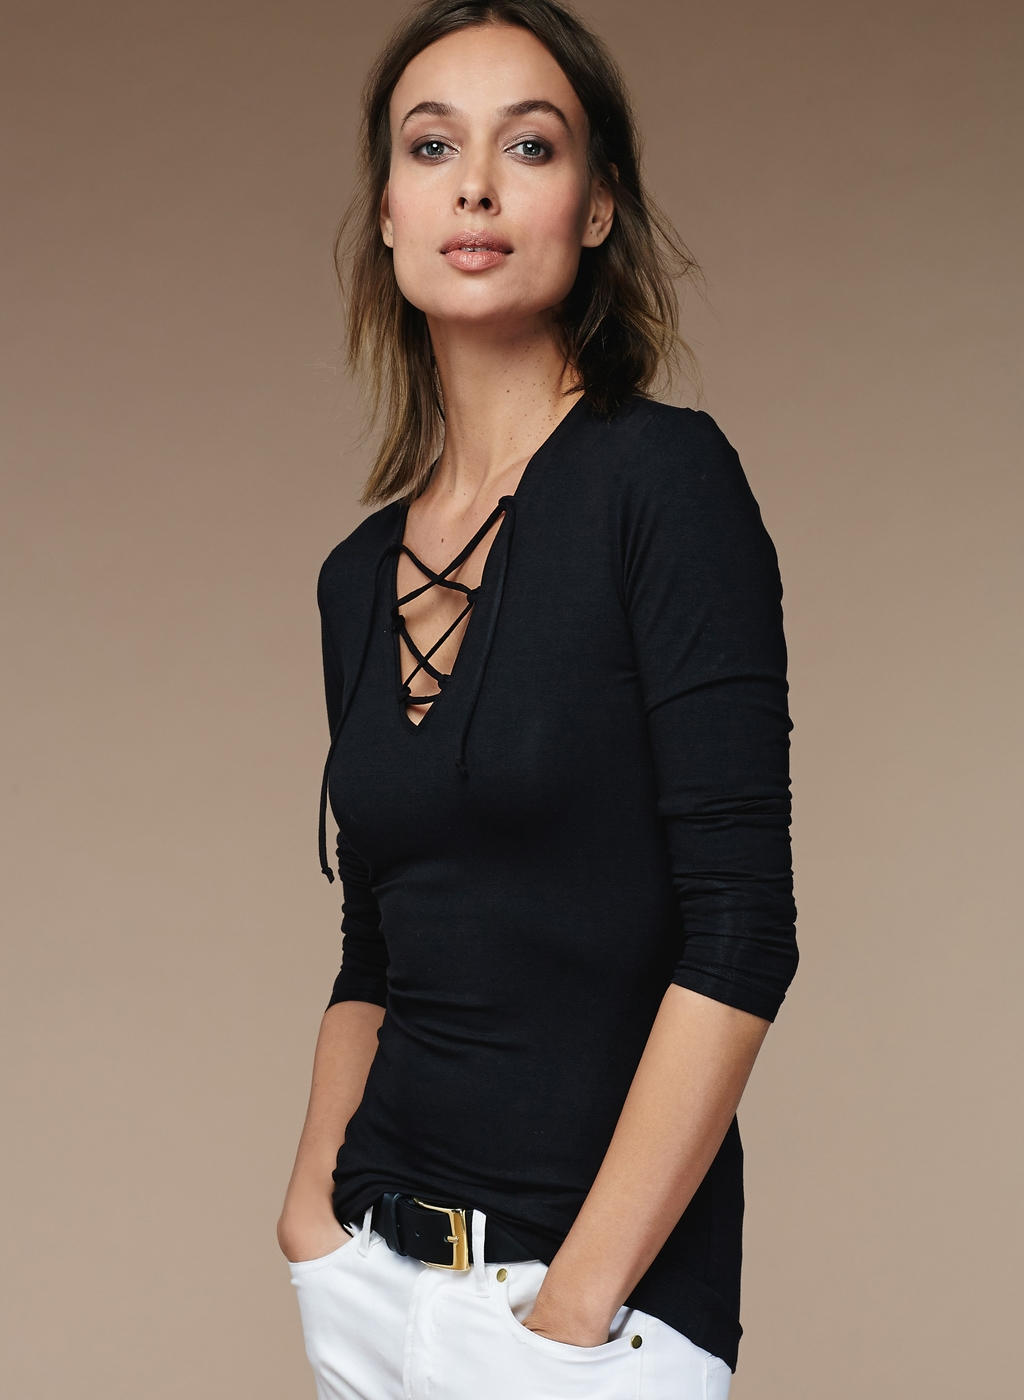 Womenswear Masham Lace Up Top - neckline: v-neck; pattern: plain; predominant colour: black; occasions: evening; length: standard; style: top; fibres: viscose/rayon - stretch; fit: body skimming; sleeve length: 3/4 length; sleeve style: standard; texture group: jersey - clingy; pattern type: fabric; season: s/s 2016; wardrobe: event